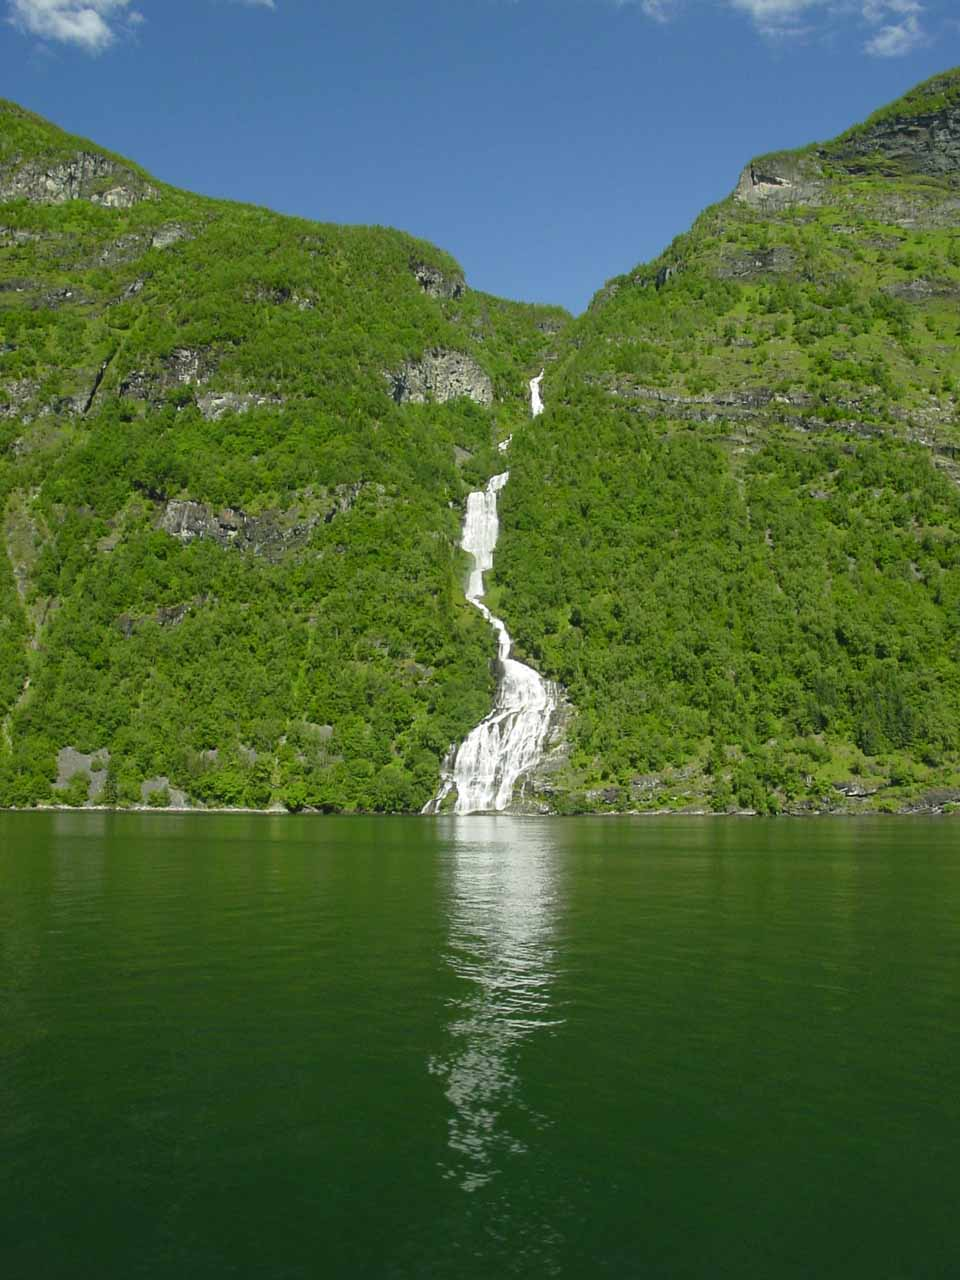 Here's a frontal look at Bringefossen